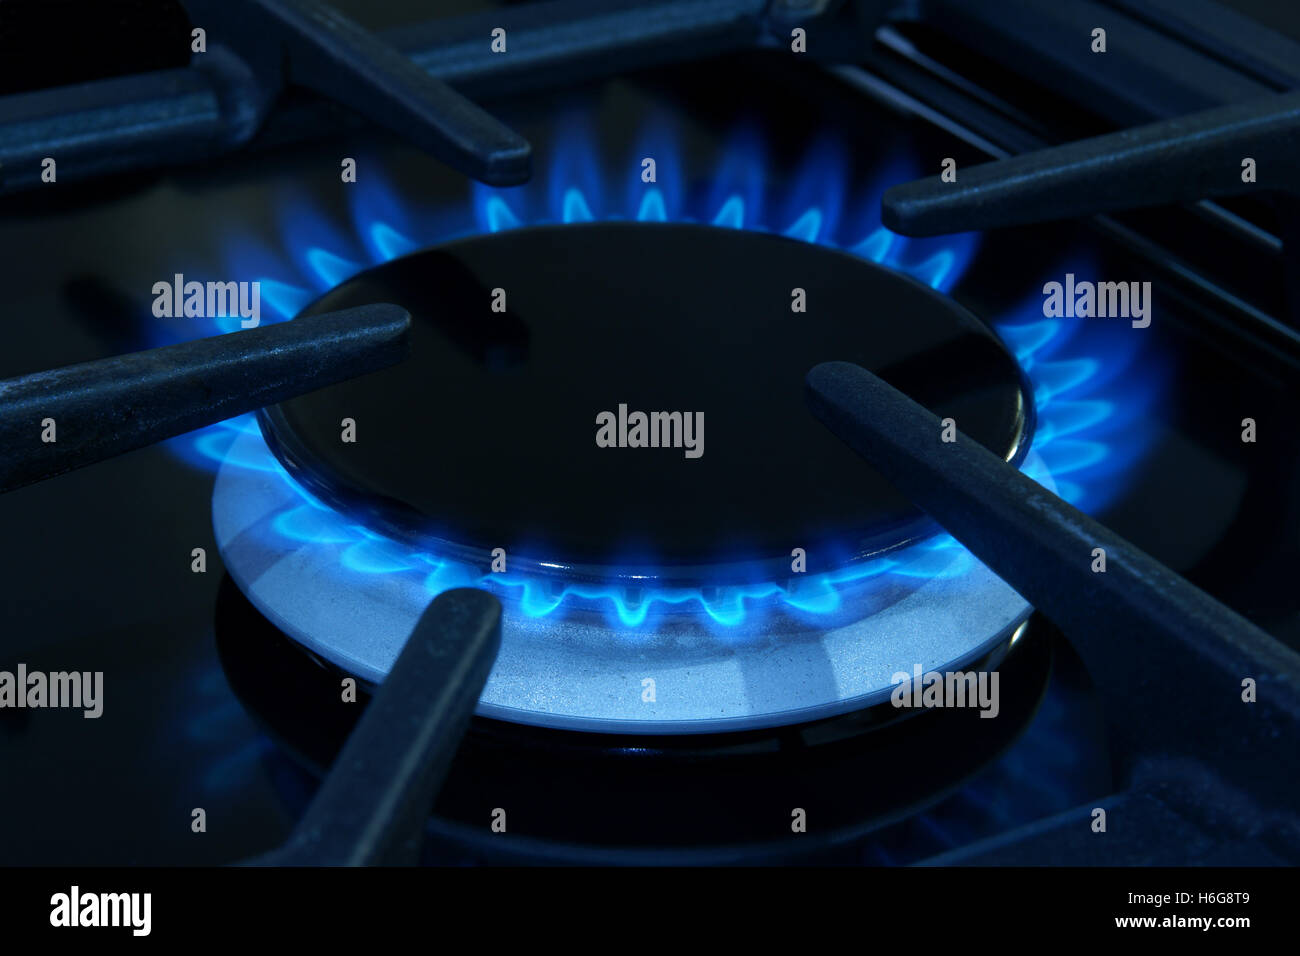 Gas ring on a domestic cooker or stove - Stock Image